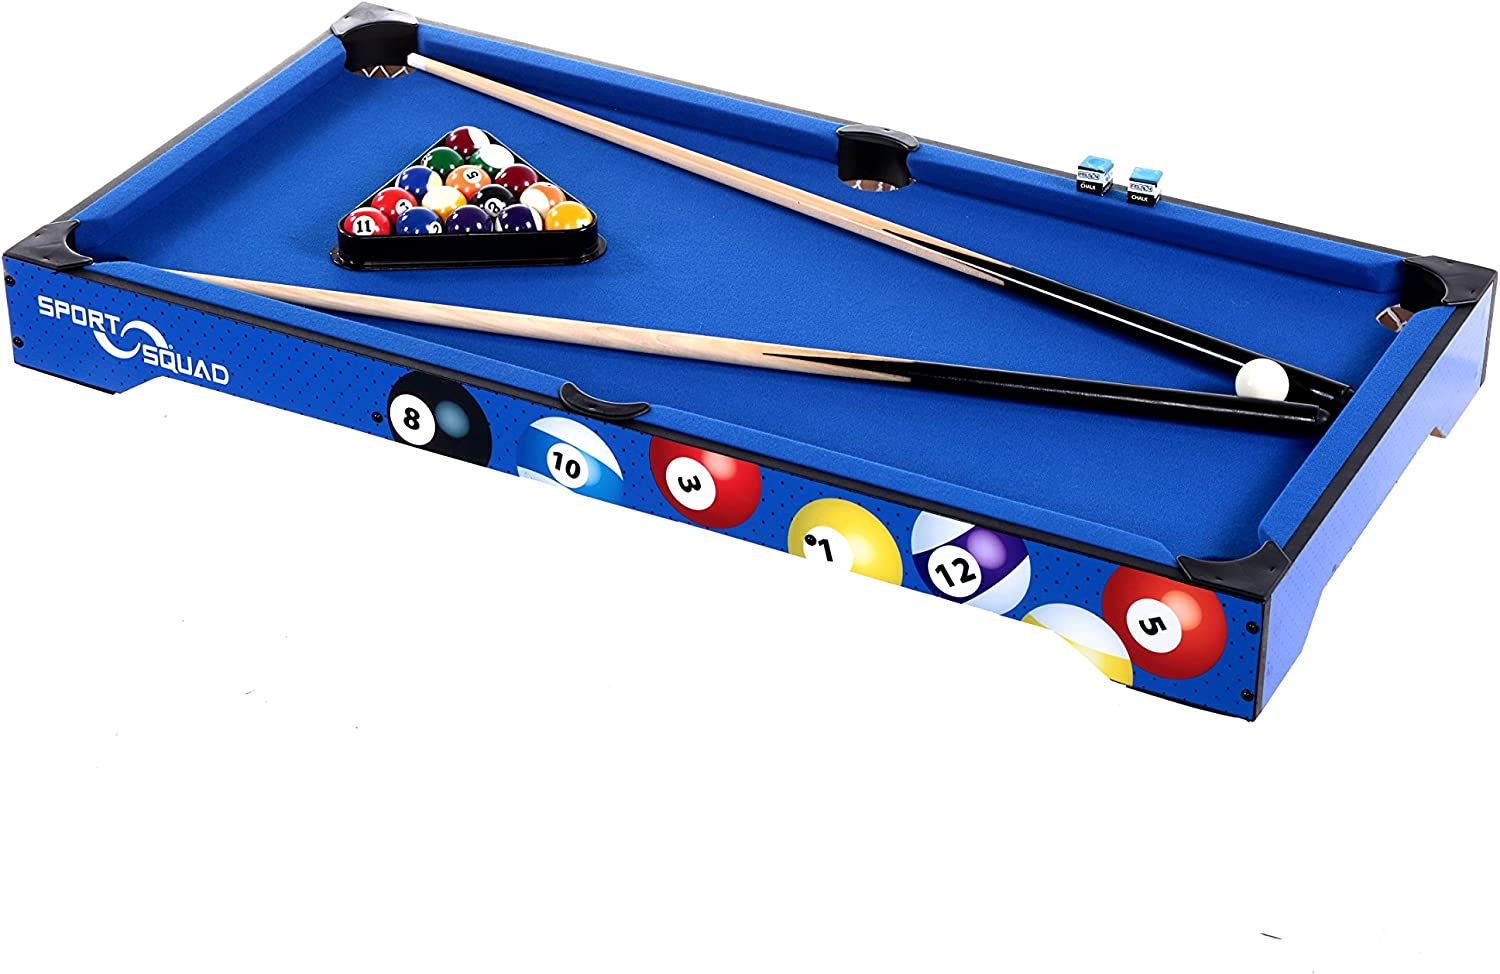 Top 10 Best Mini Pool Table for Kids (2020 Reviews & Guide) 5